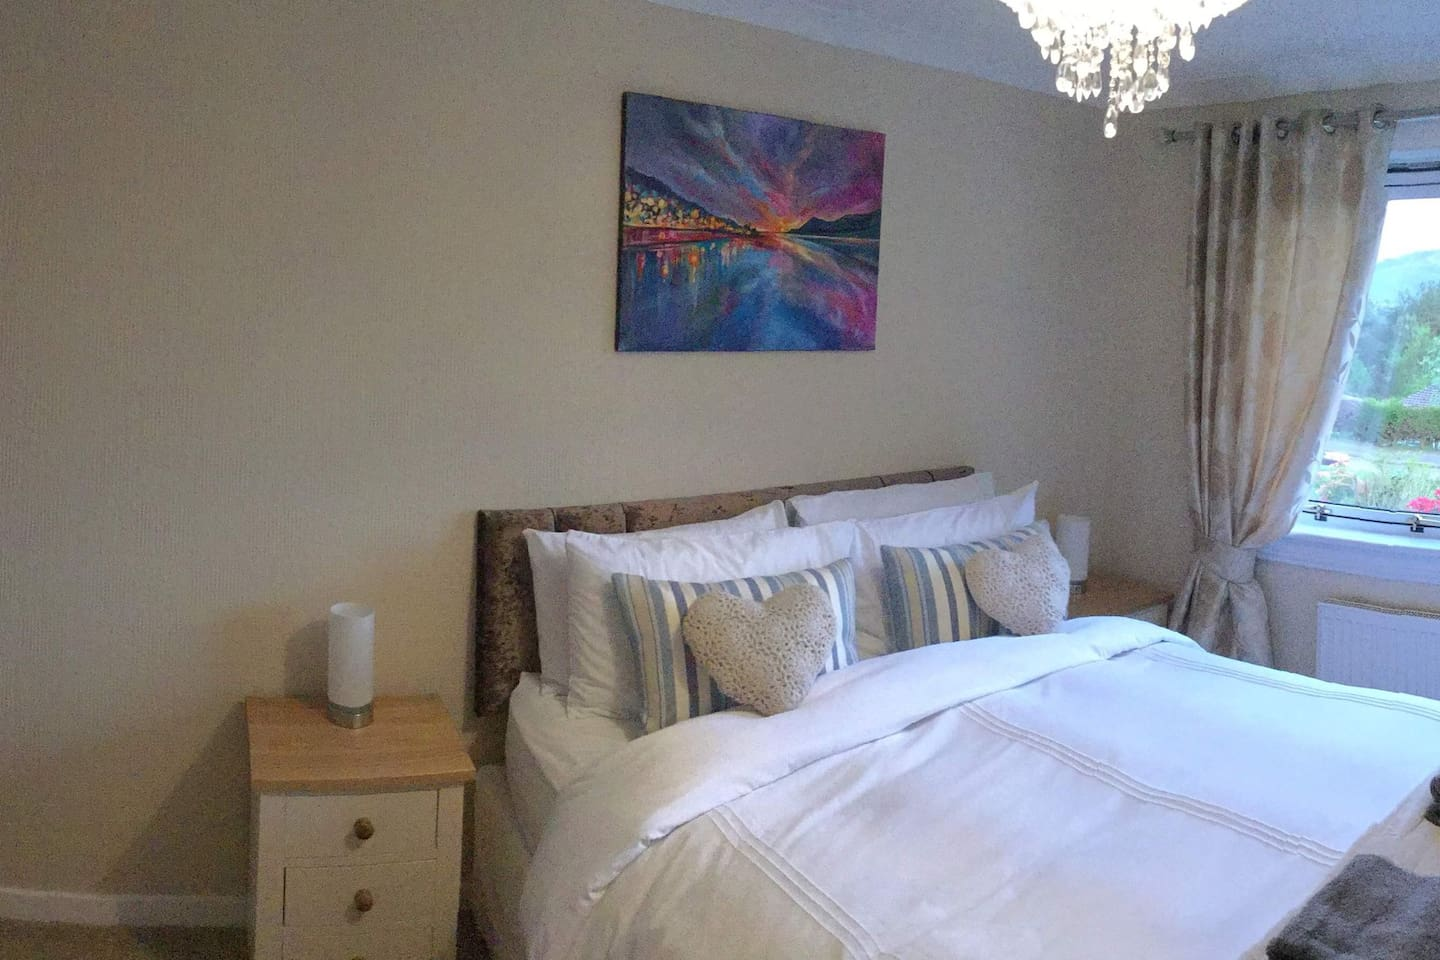 King size bed, room at front of house with beautiful view